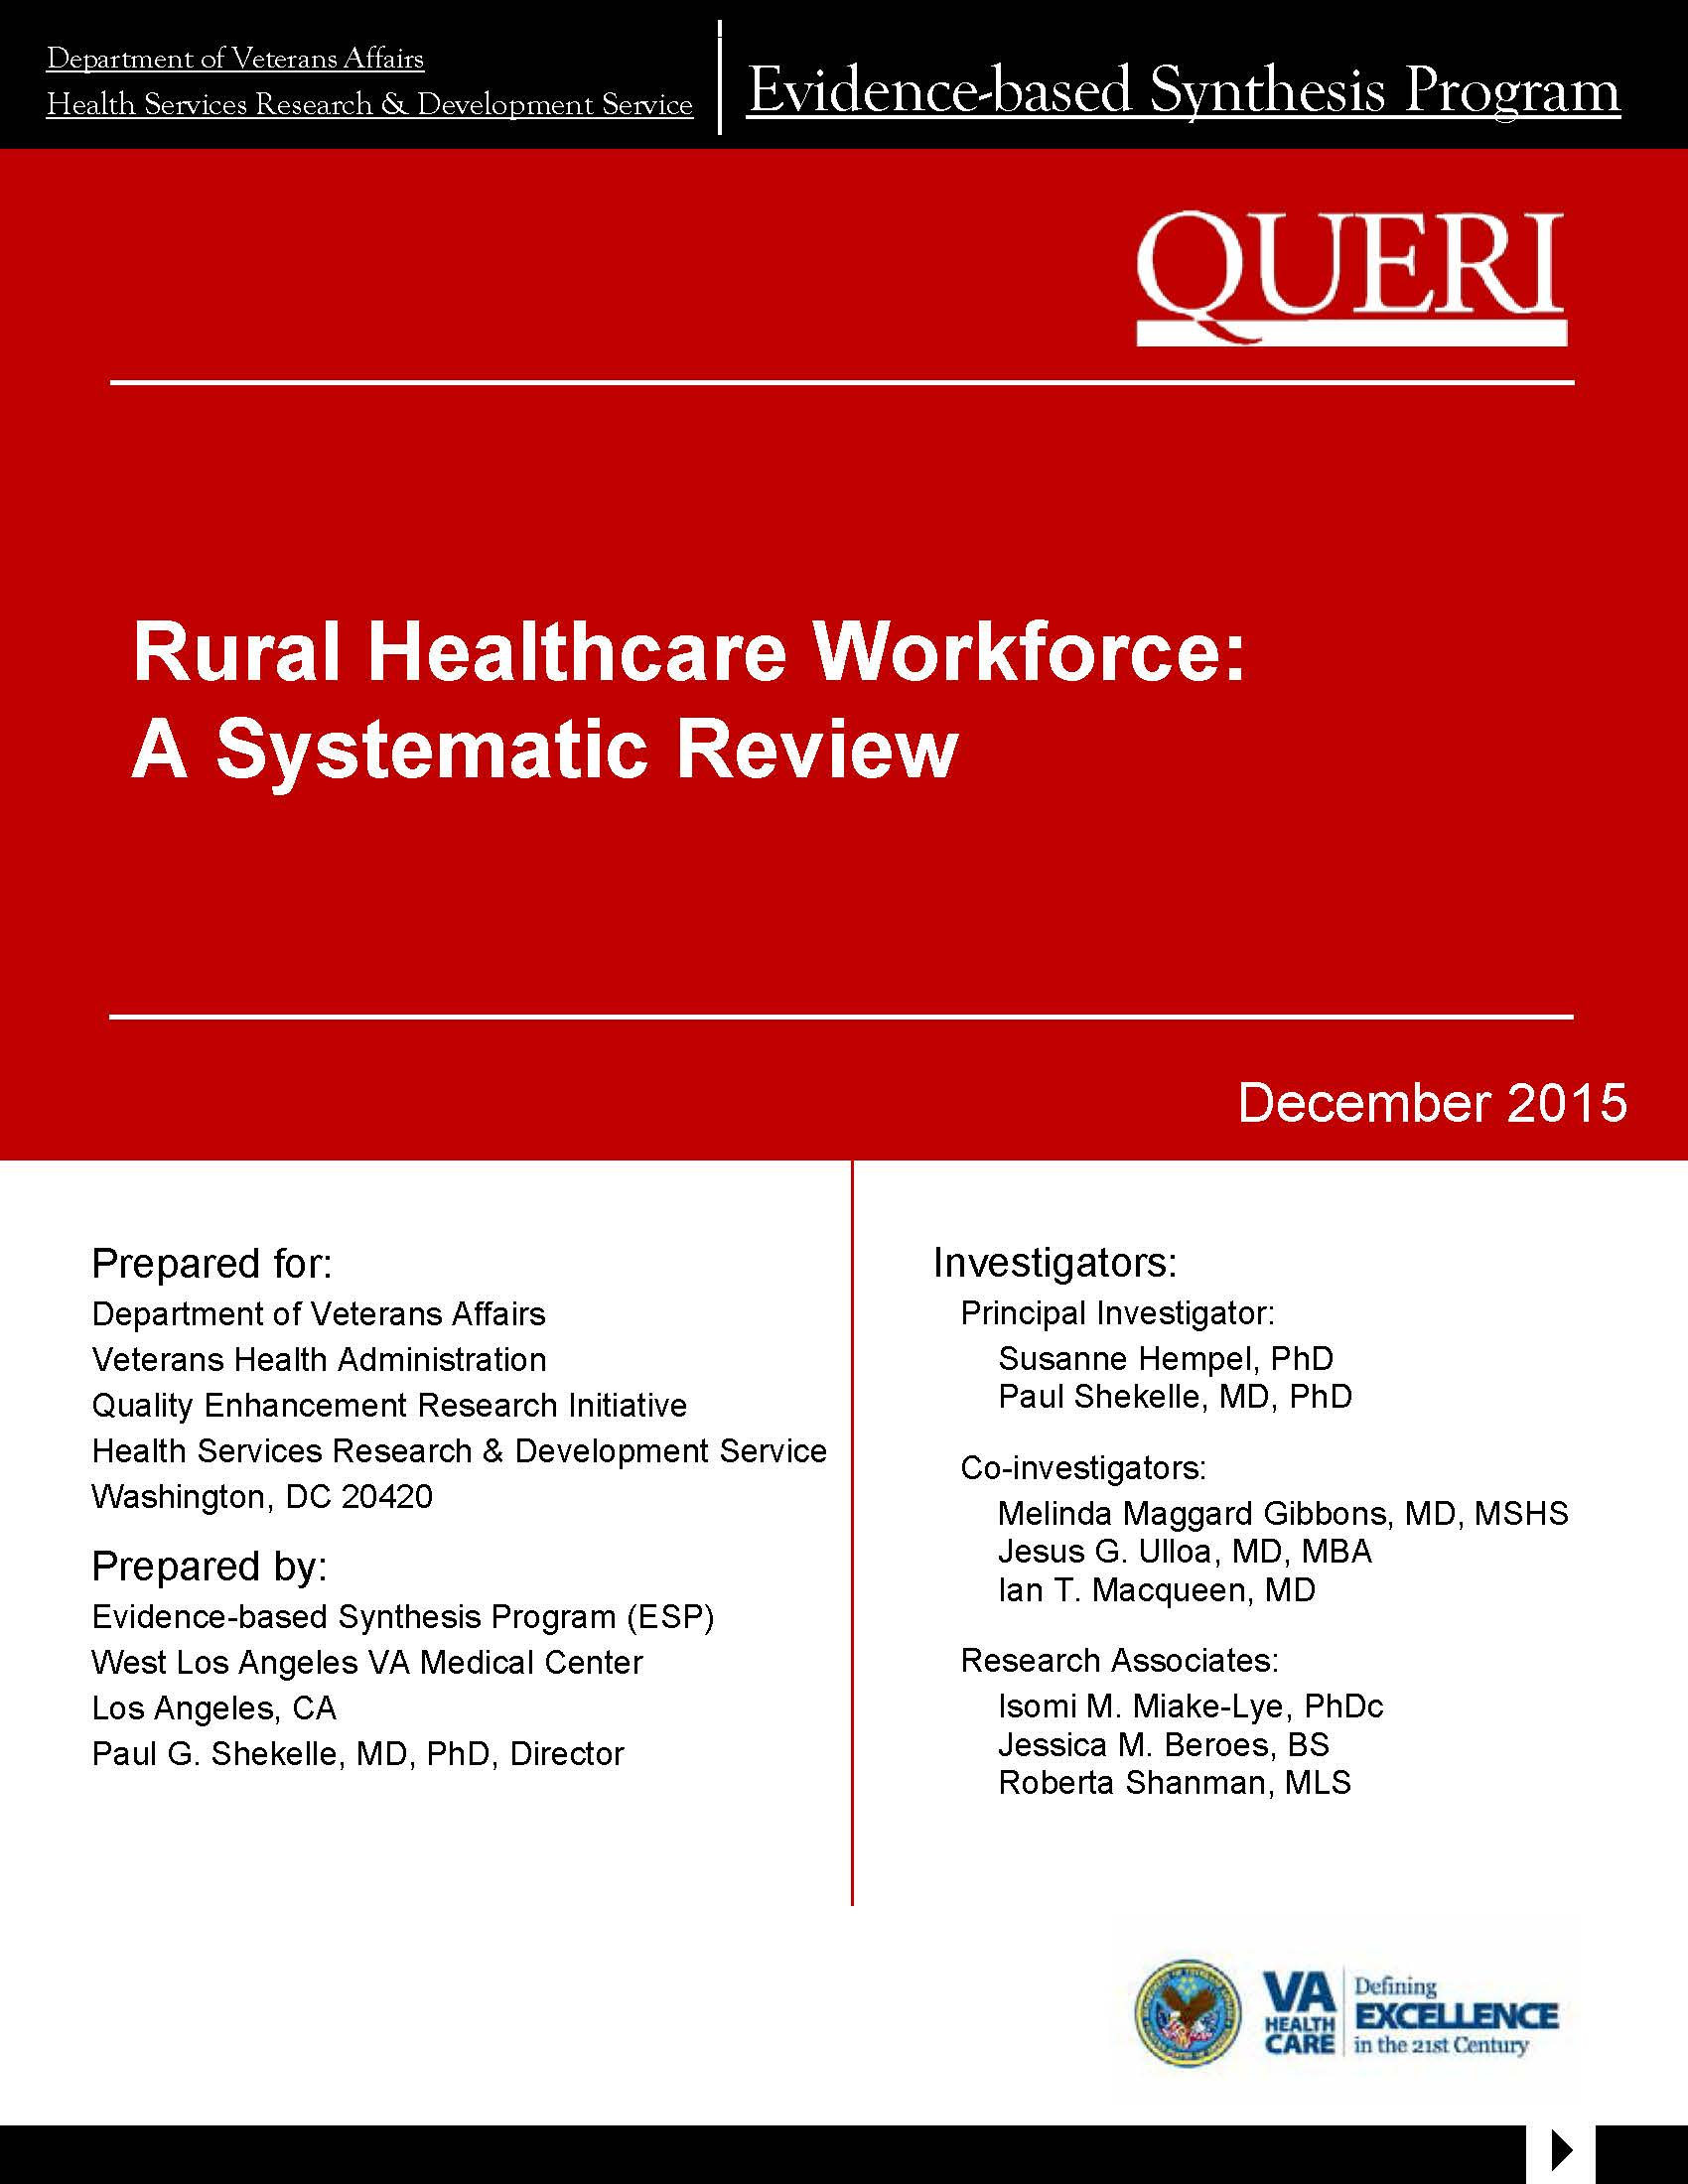 Rural Healthcare Workforce: A Systematic Review